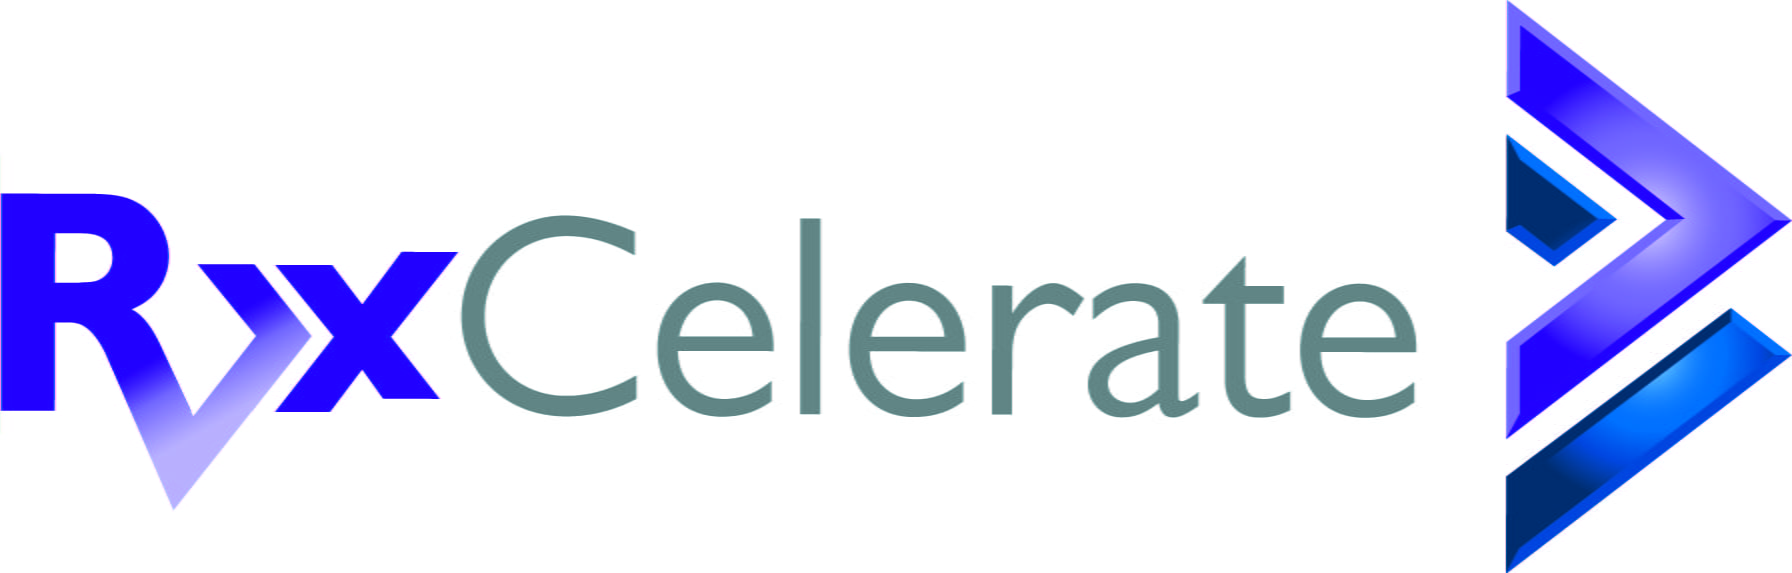 RxCelerate Opens UK-Based Chemistry Operations at the University of Warwick